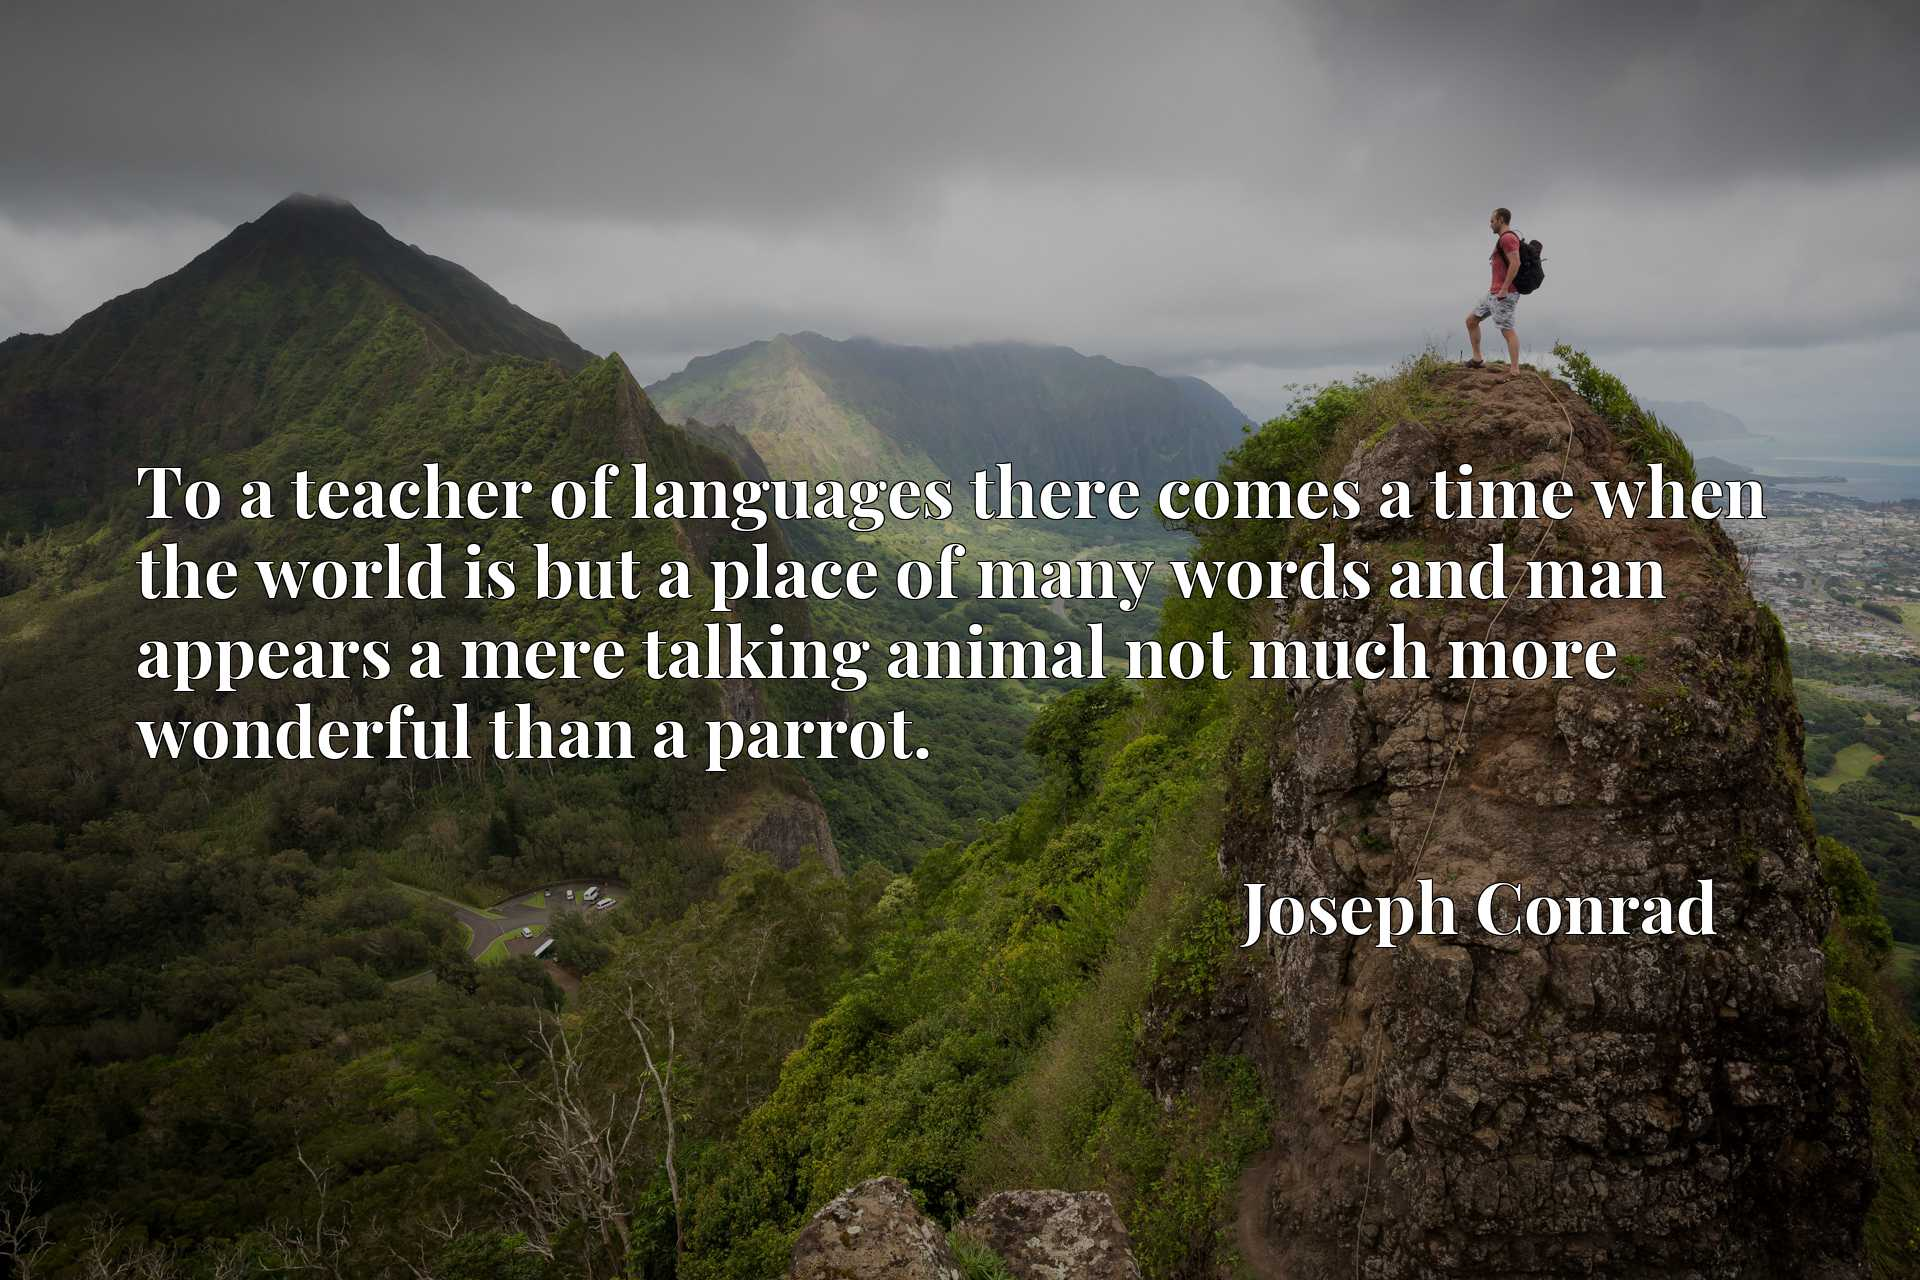 Quote Picture :To a teacher of languages there comes a time when the world is but a place of many words and man appears a mere talking animal not much more wonderful than a parrot.